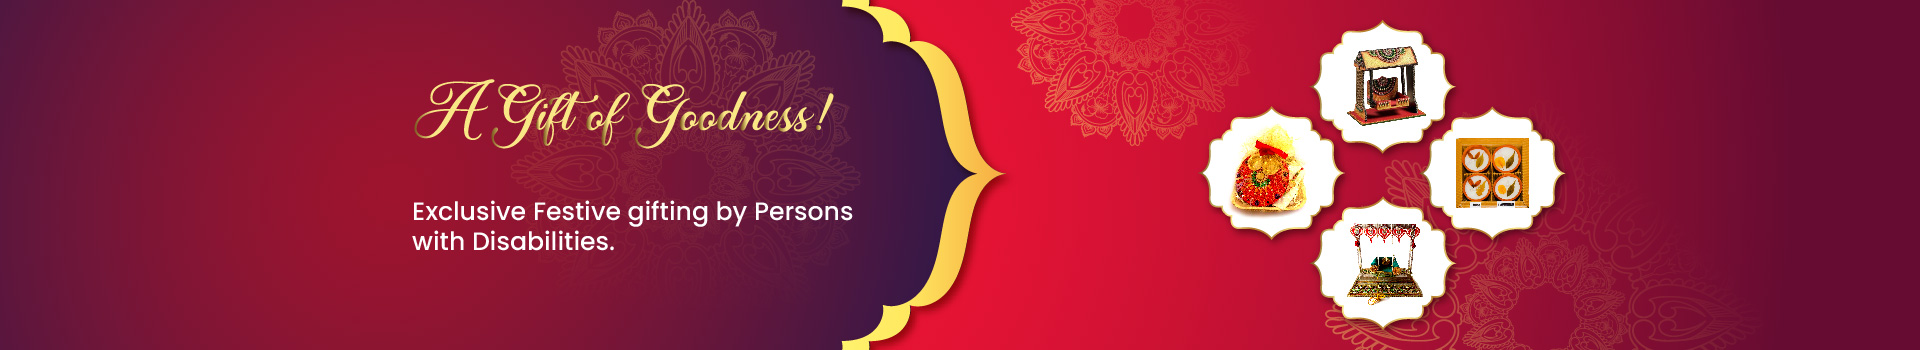 A banner with reddish background and images of Janmashtami Jhula and festive gift hamper, which is the representation of our Online store section.